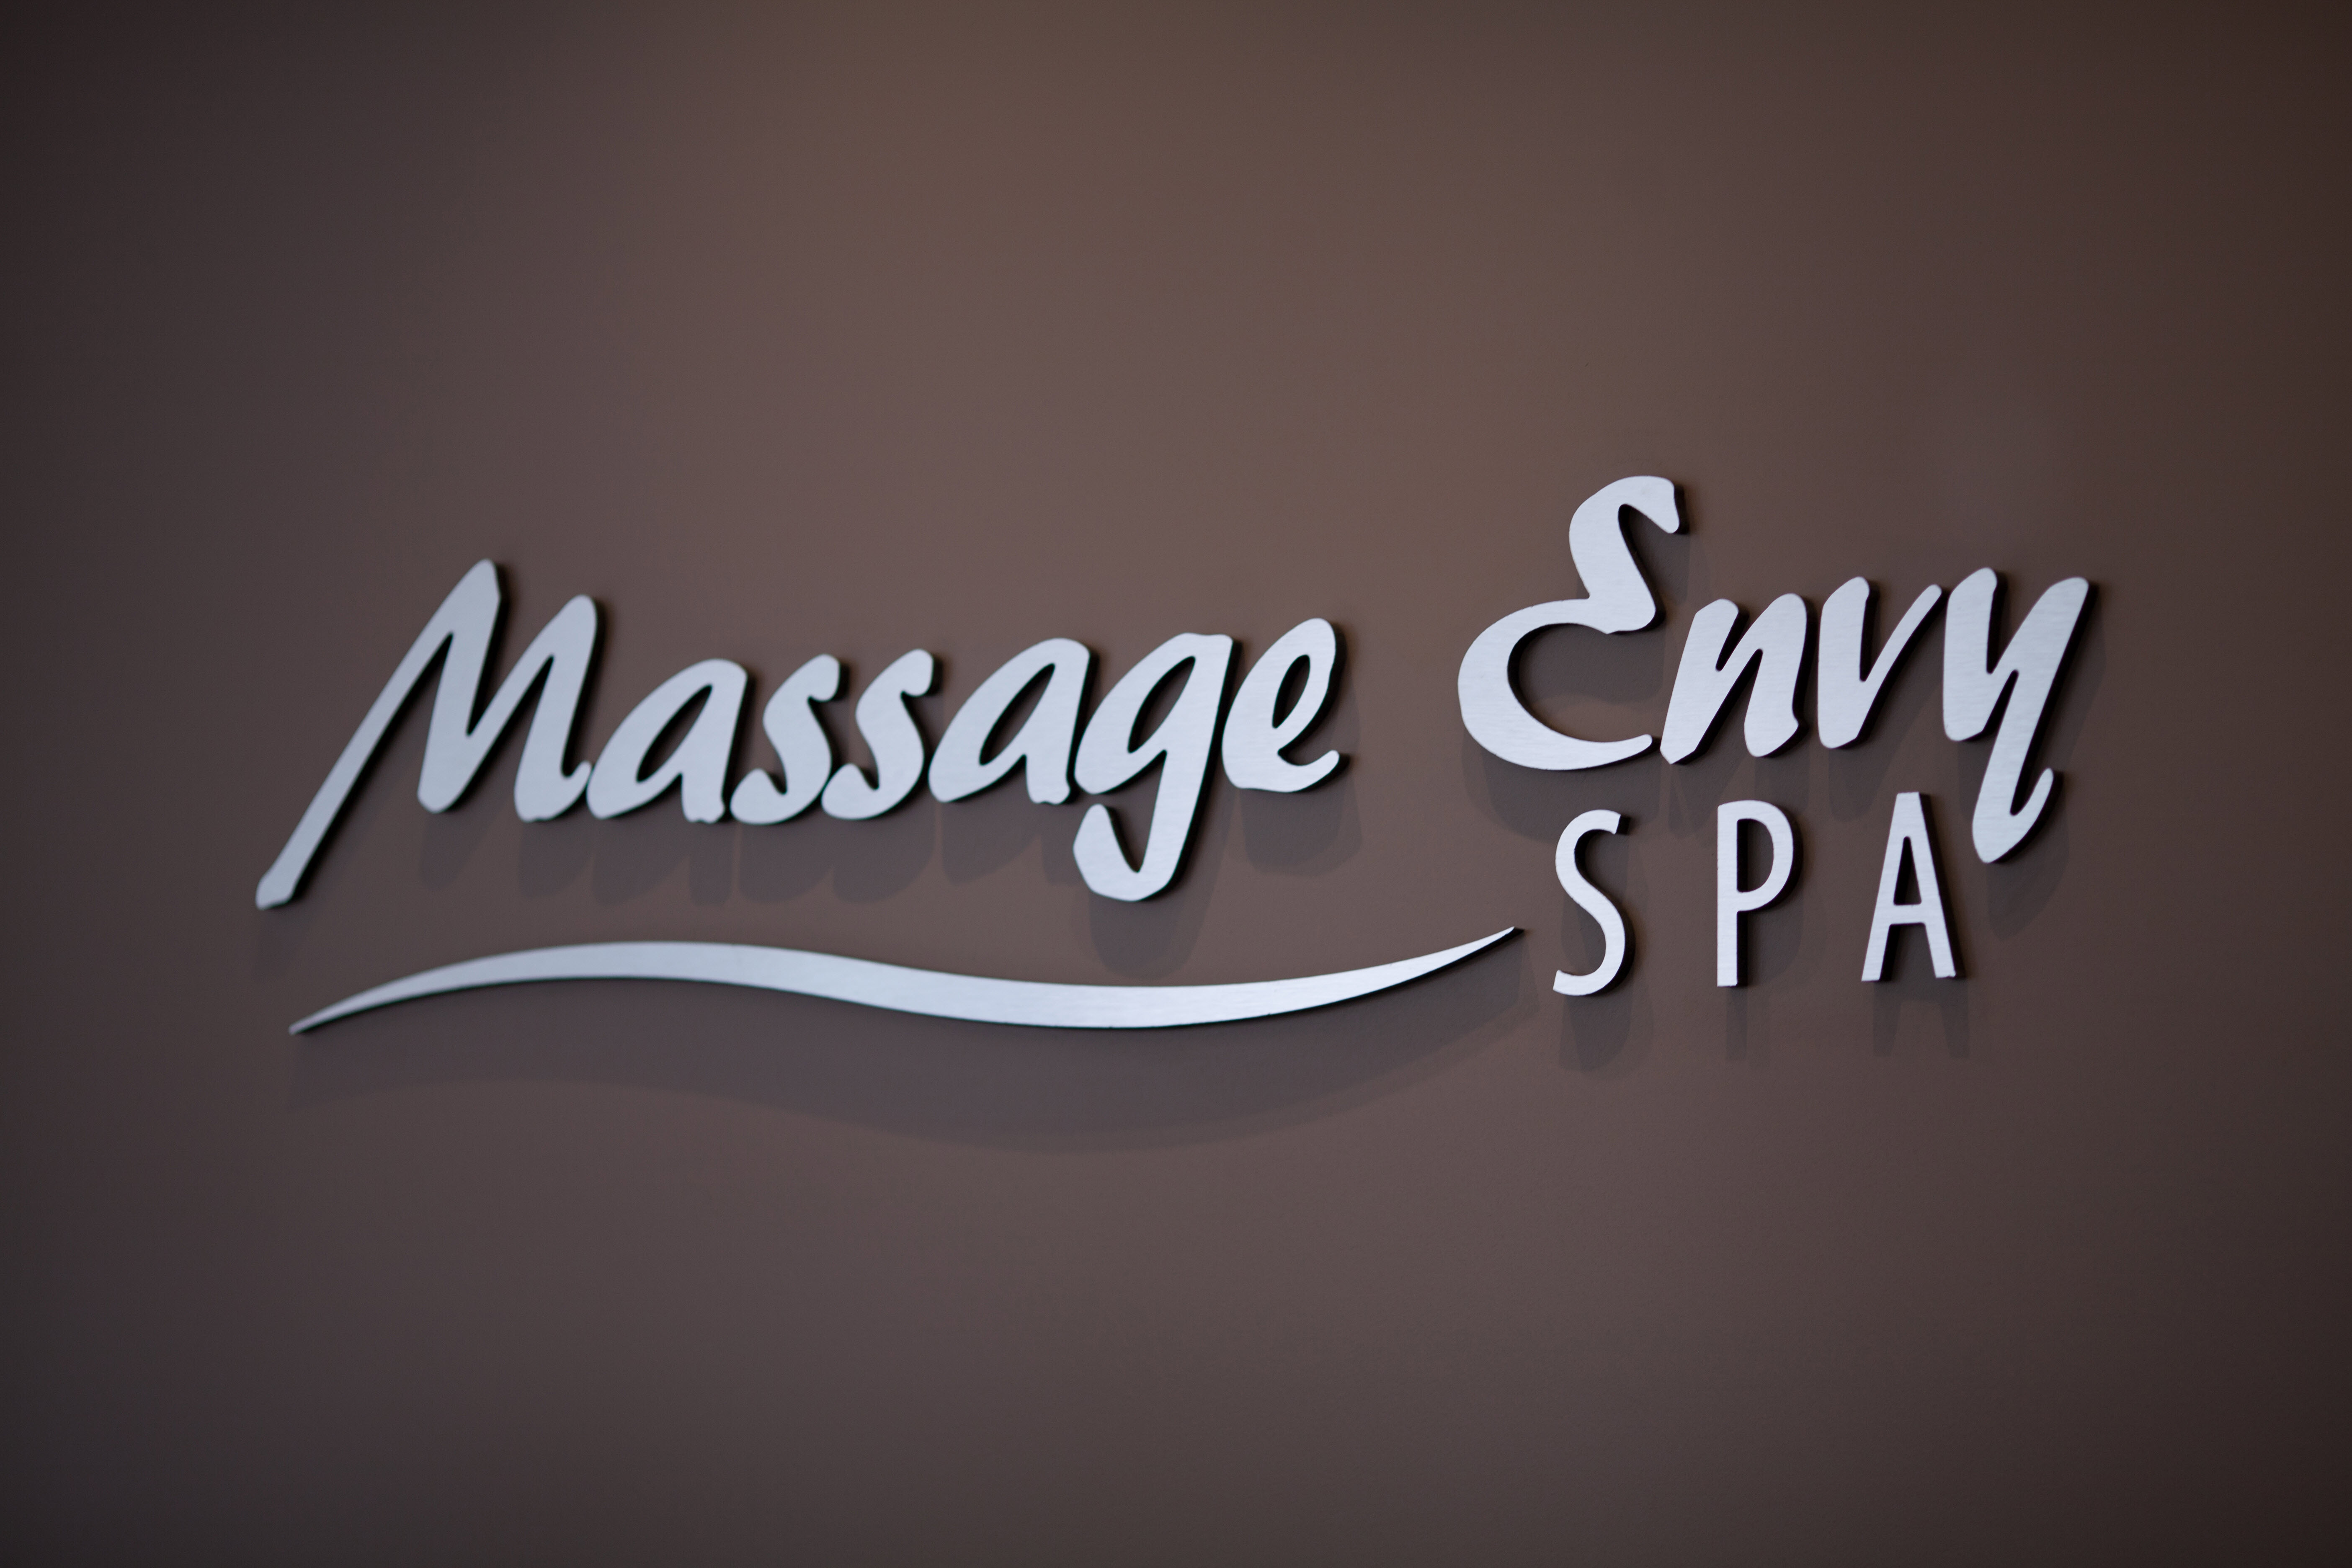 Massage Envy Spa - Dr. Phillips